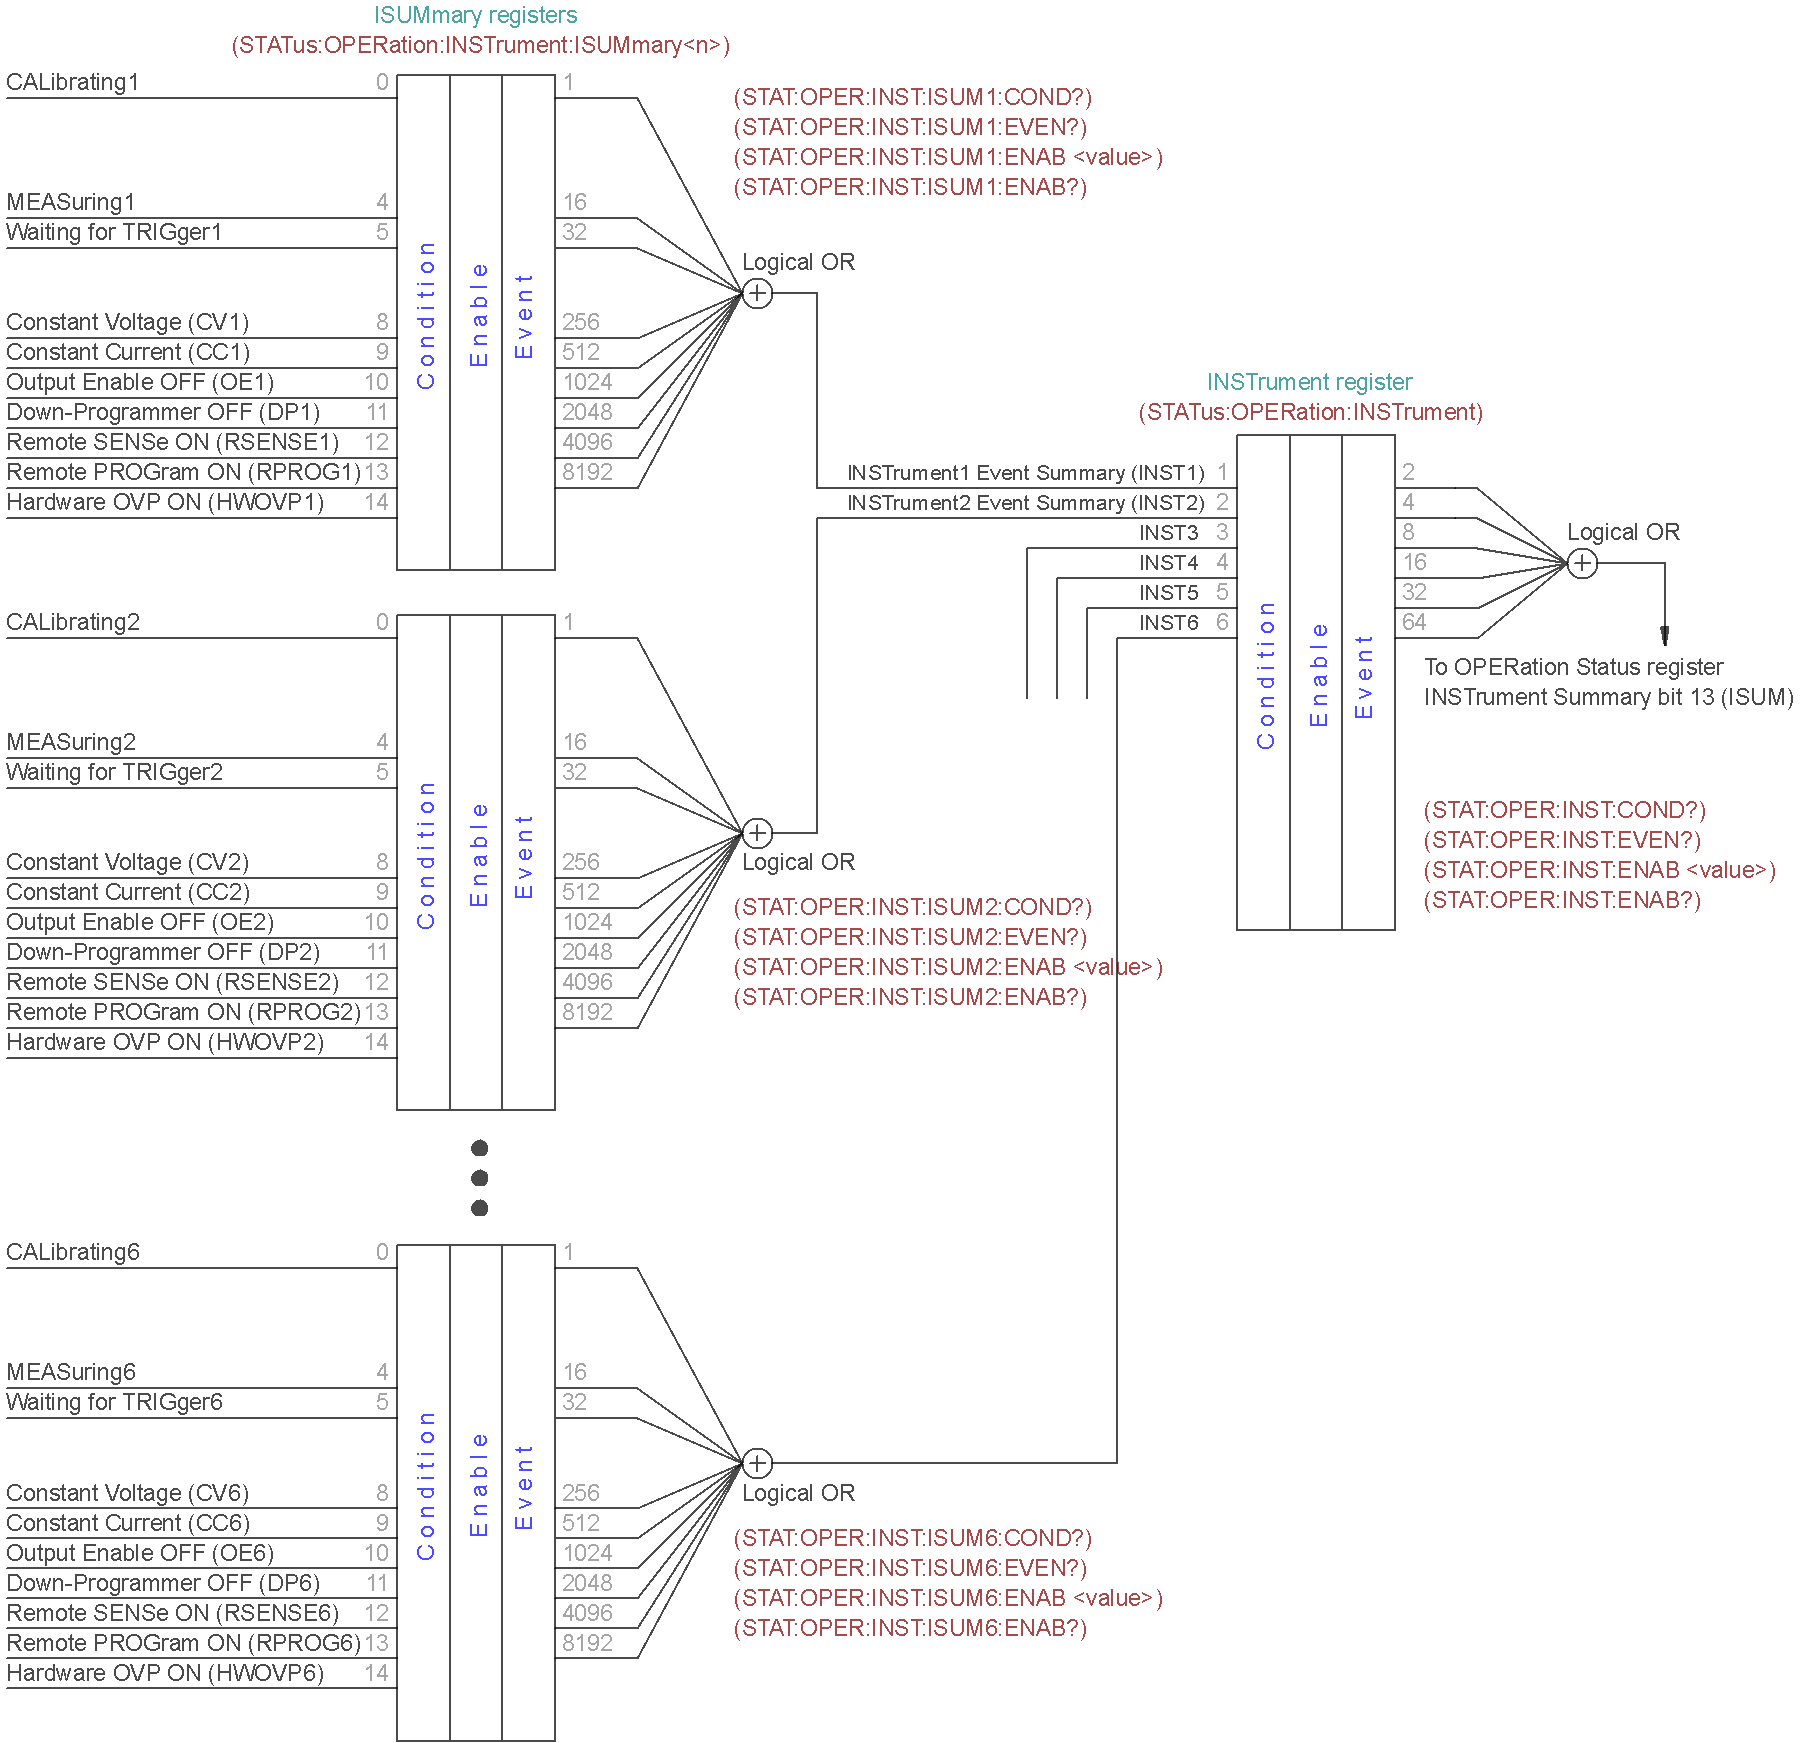 bb3_operation_status_registers.png